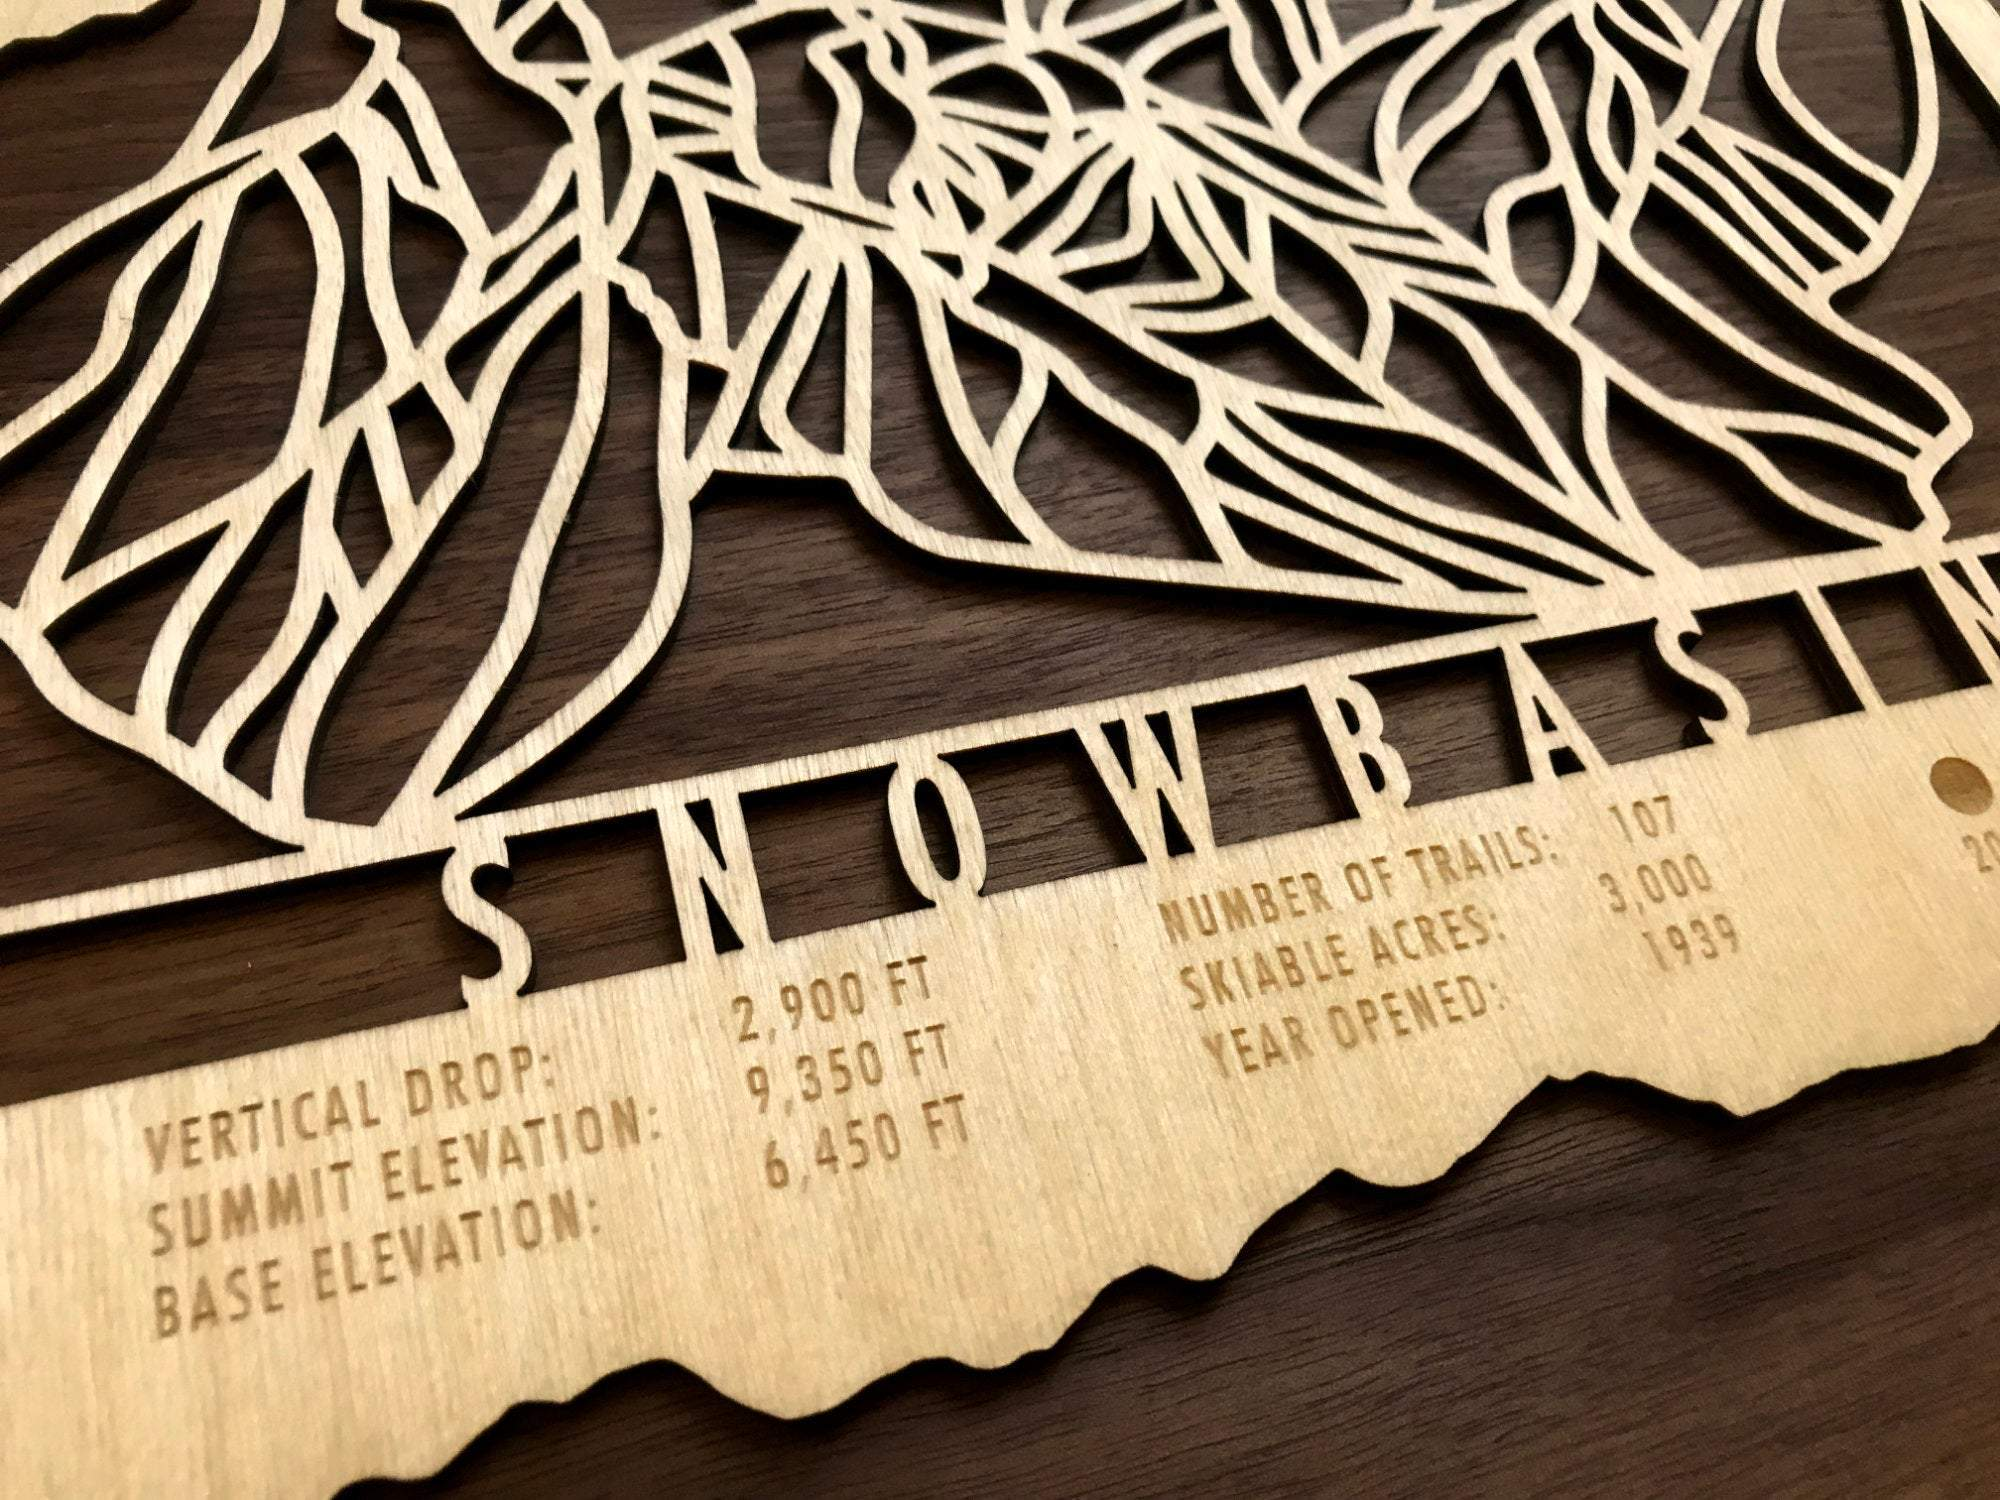 Snowbasin Ski Decor Trail Map Art - MountainCut